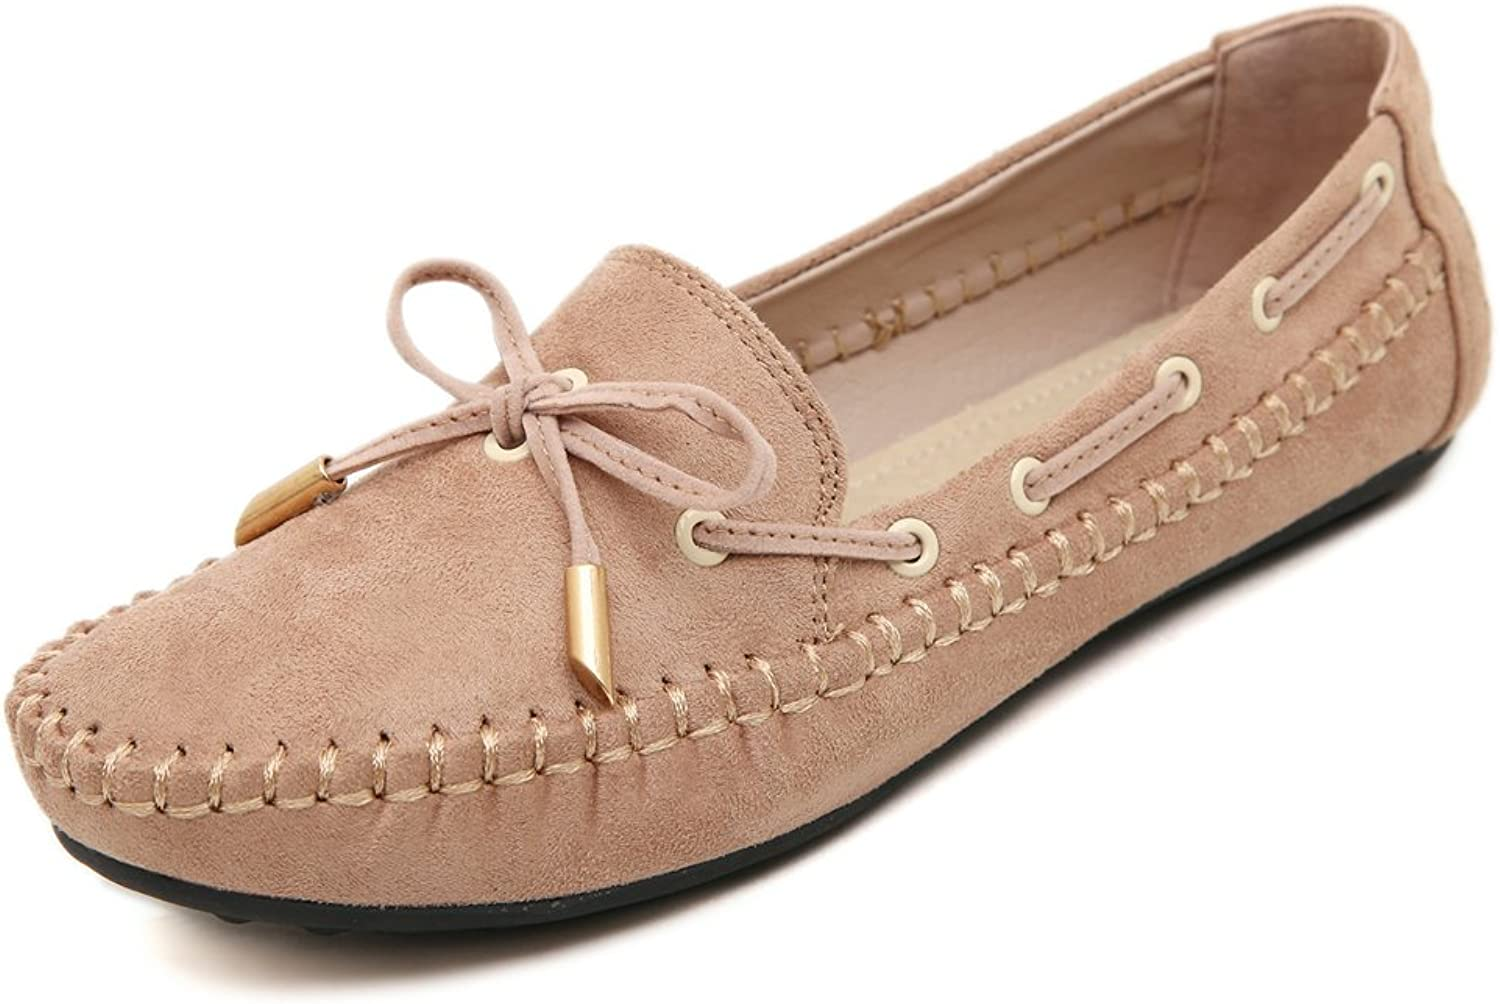 Adelina Women's Comfort Laced Boat Loafer shoes Driving Moccasin Apricot 41 EU   9.5-10 US